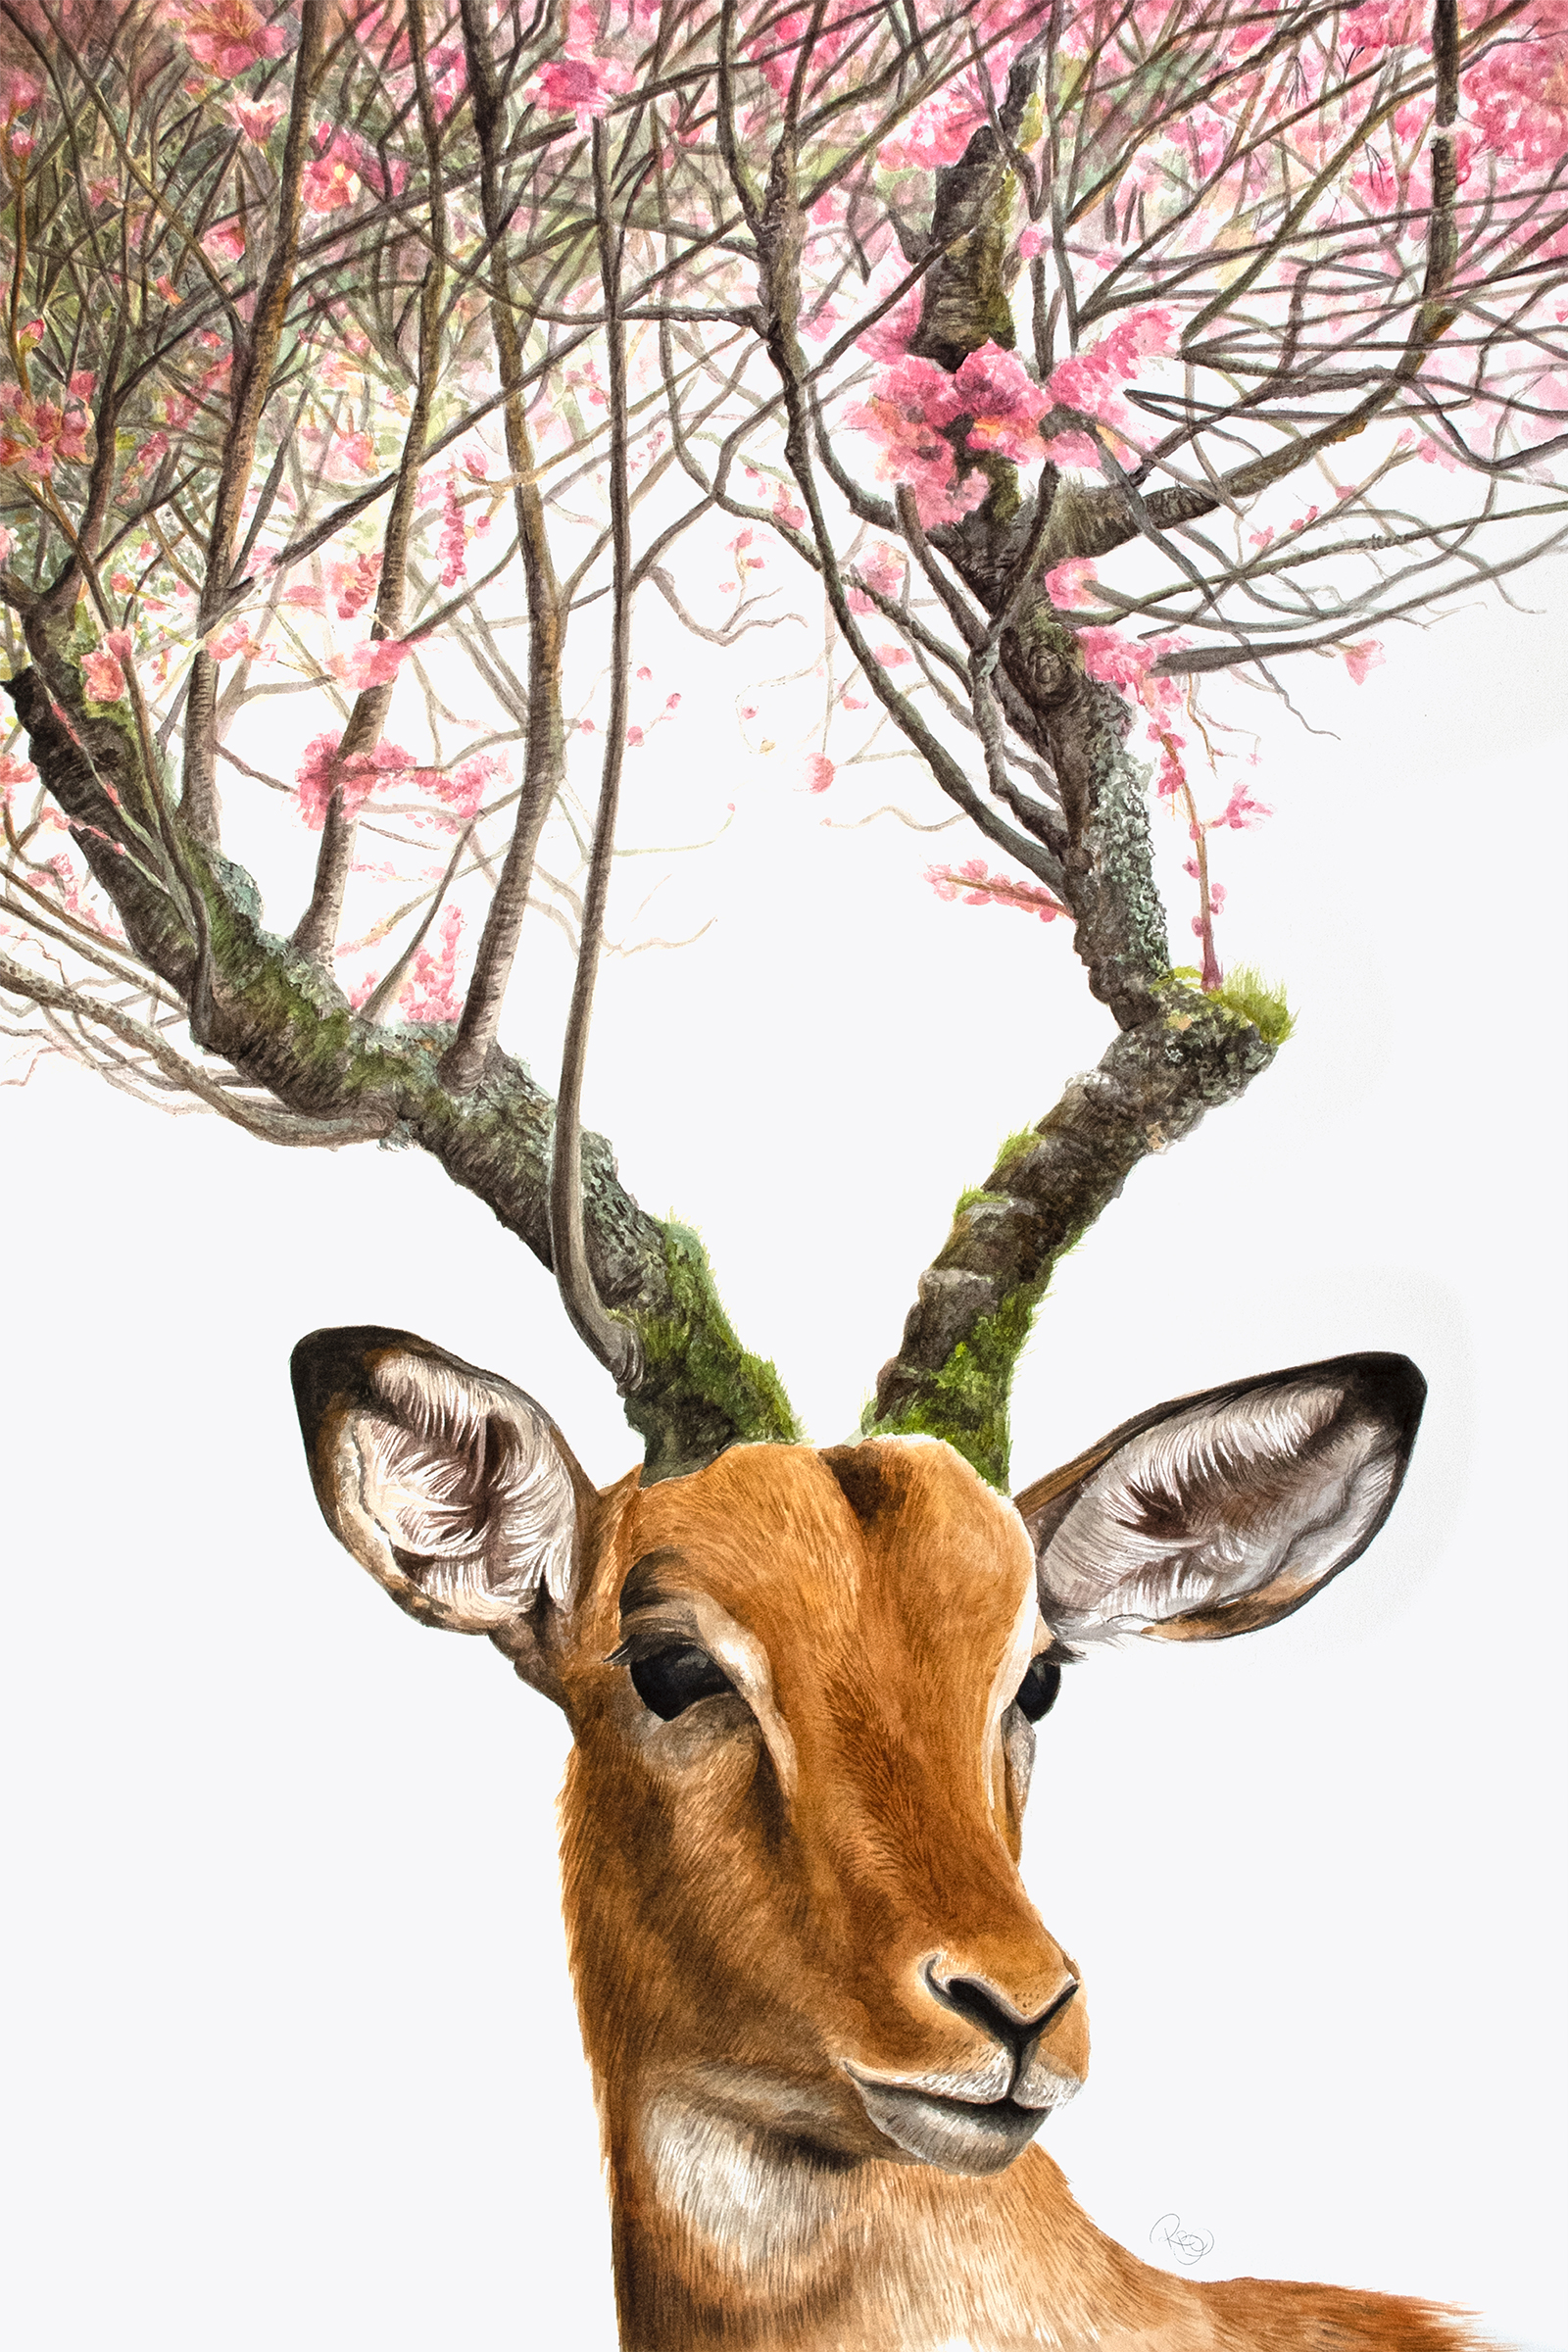 African antelope, impala, with horns made of tree bark covered in moss turning into cherry tree branches on which pink cherry blossoms are blooming